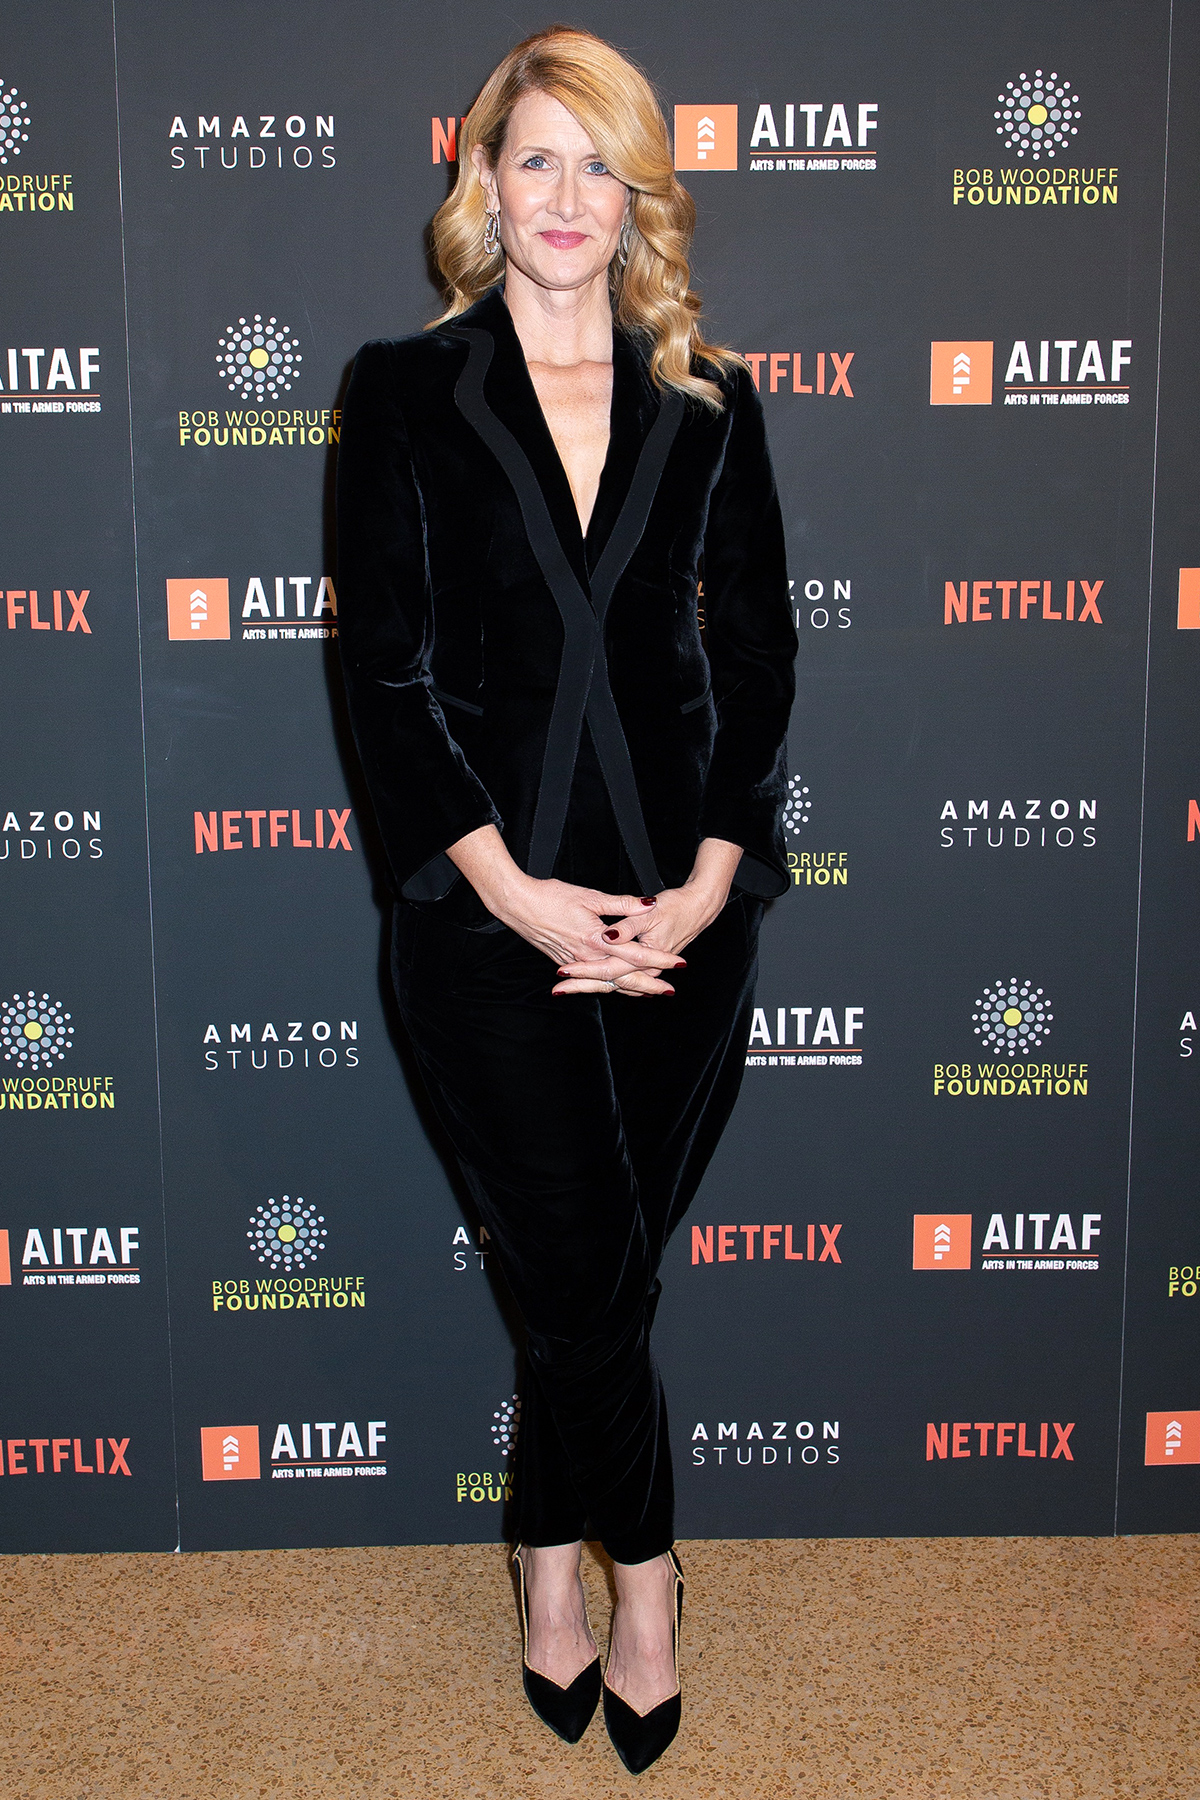 Laura Dern attends Arts in the Armed Forces 11th Annual Broadway Event for the staged reading of A Raisin in the Sun at American Airlines Theatre on November 11, 2019